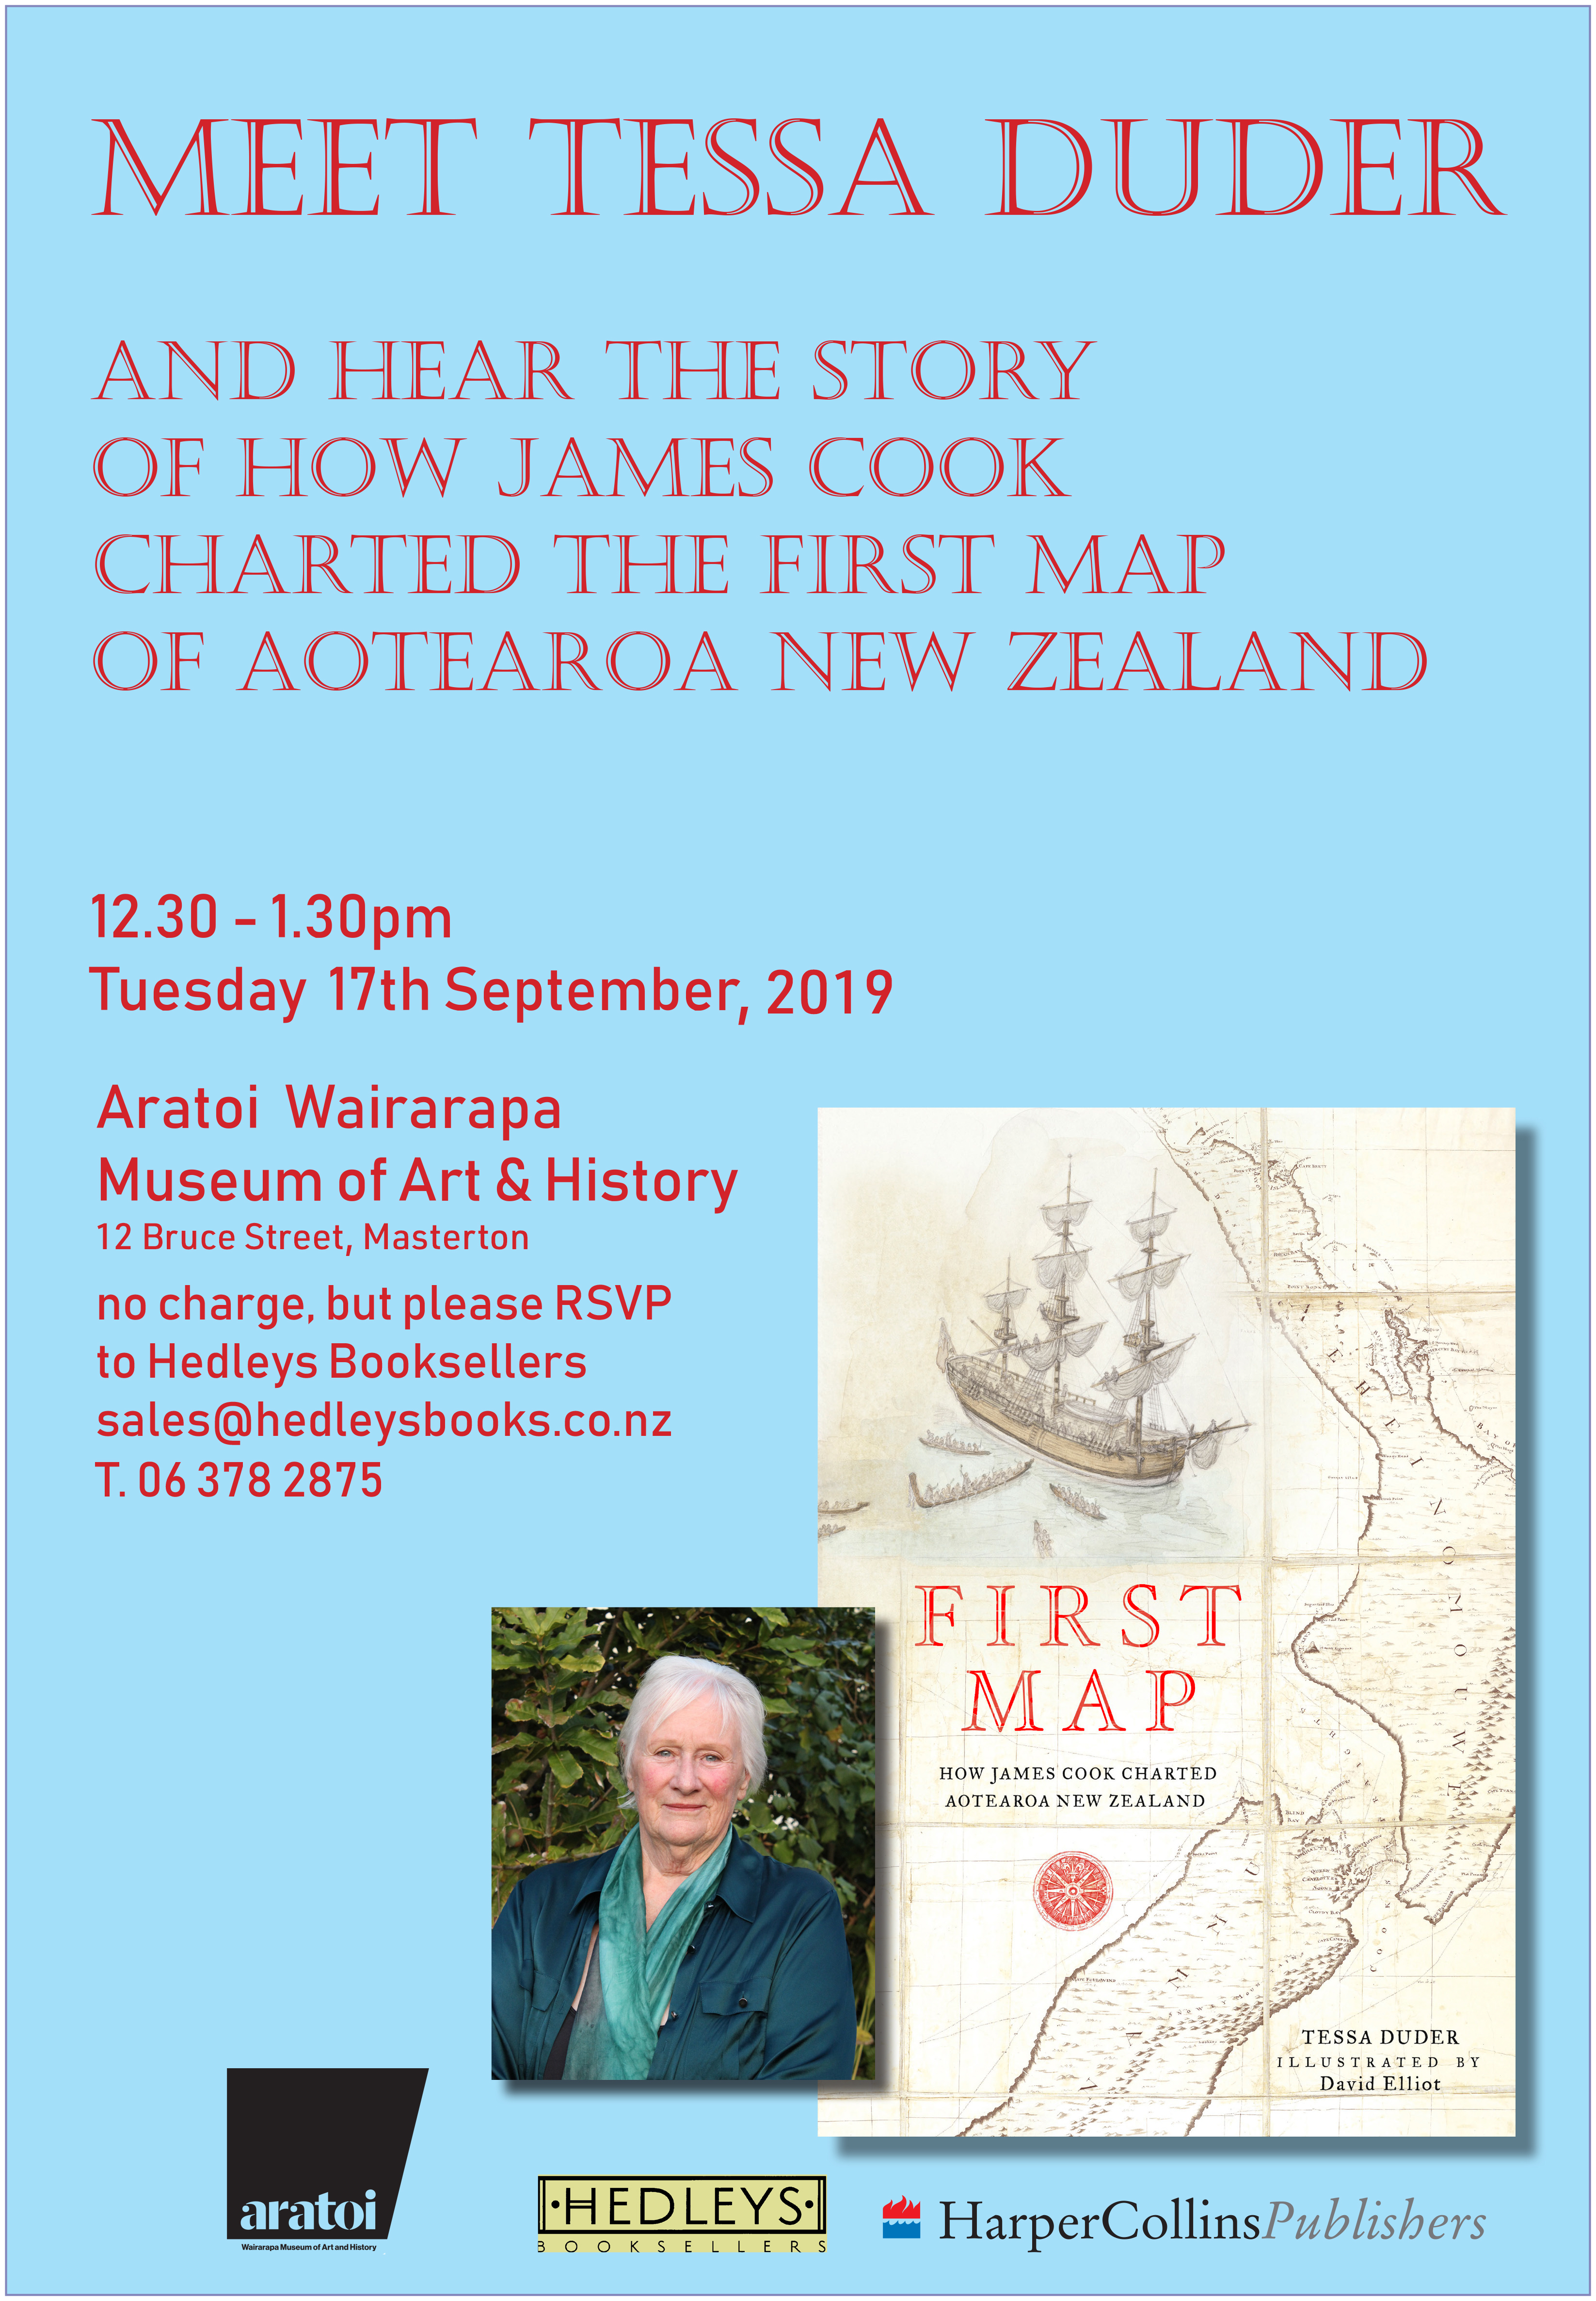 Wairarapa New Zealand Map.First Map How James Cook Charted Aotearoa New Zealand By Tessa Duder